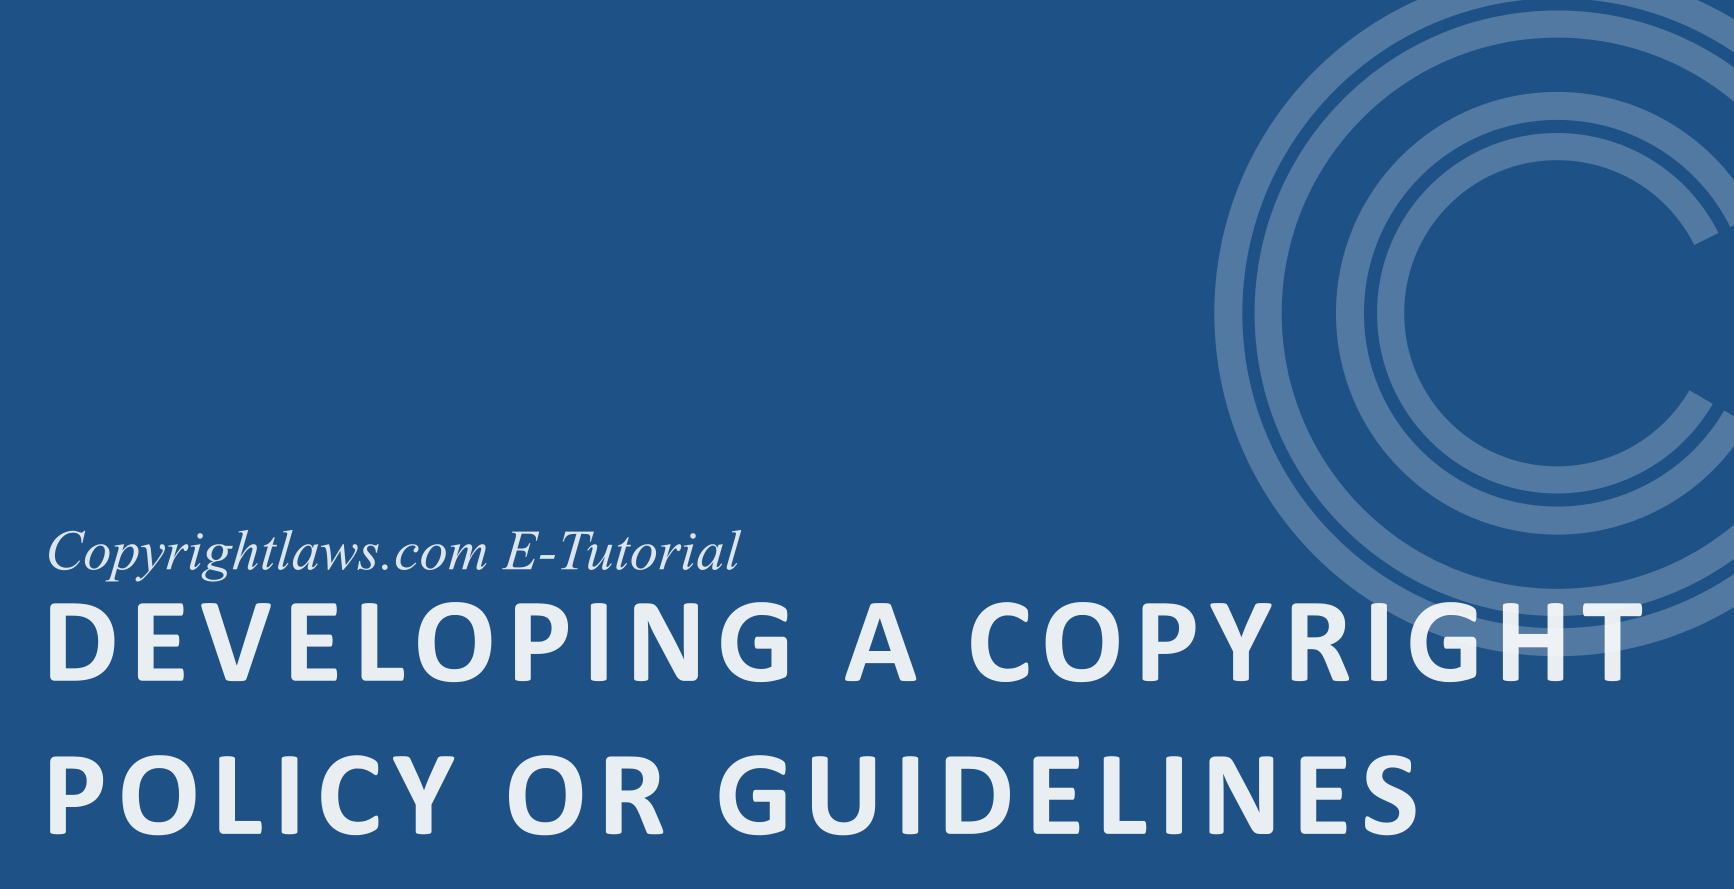 Online copyright course on writing a copyright policy, guidelines or best practices